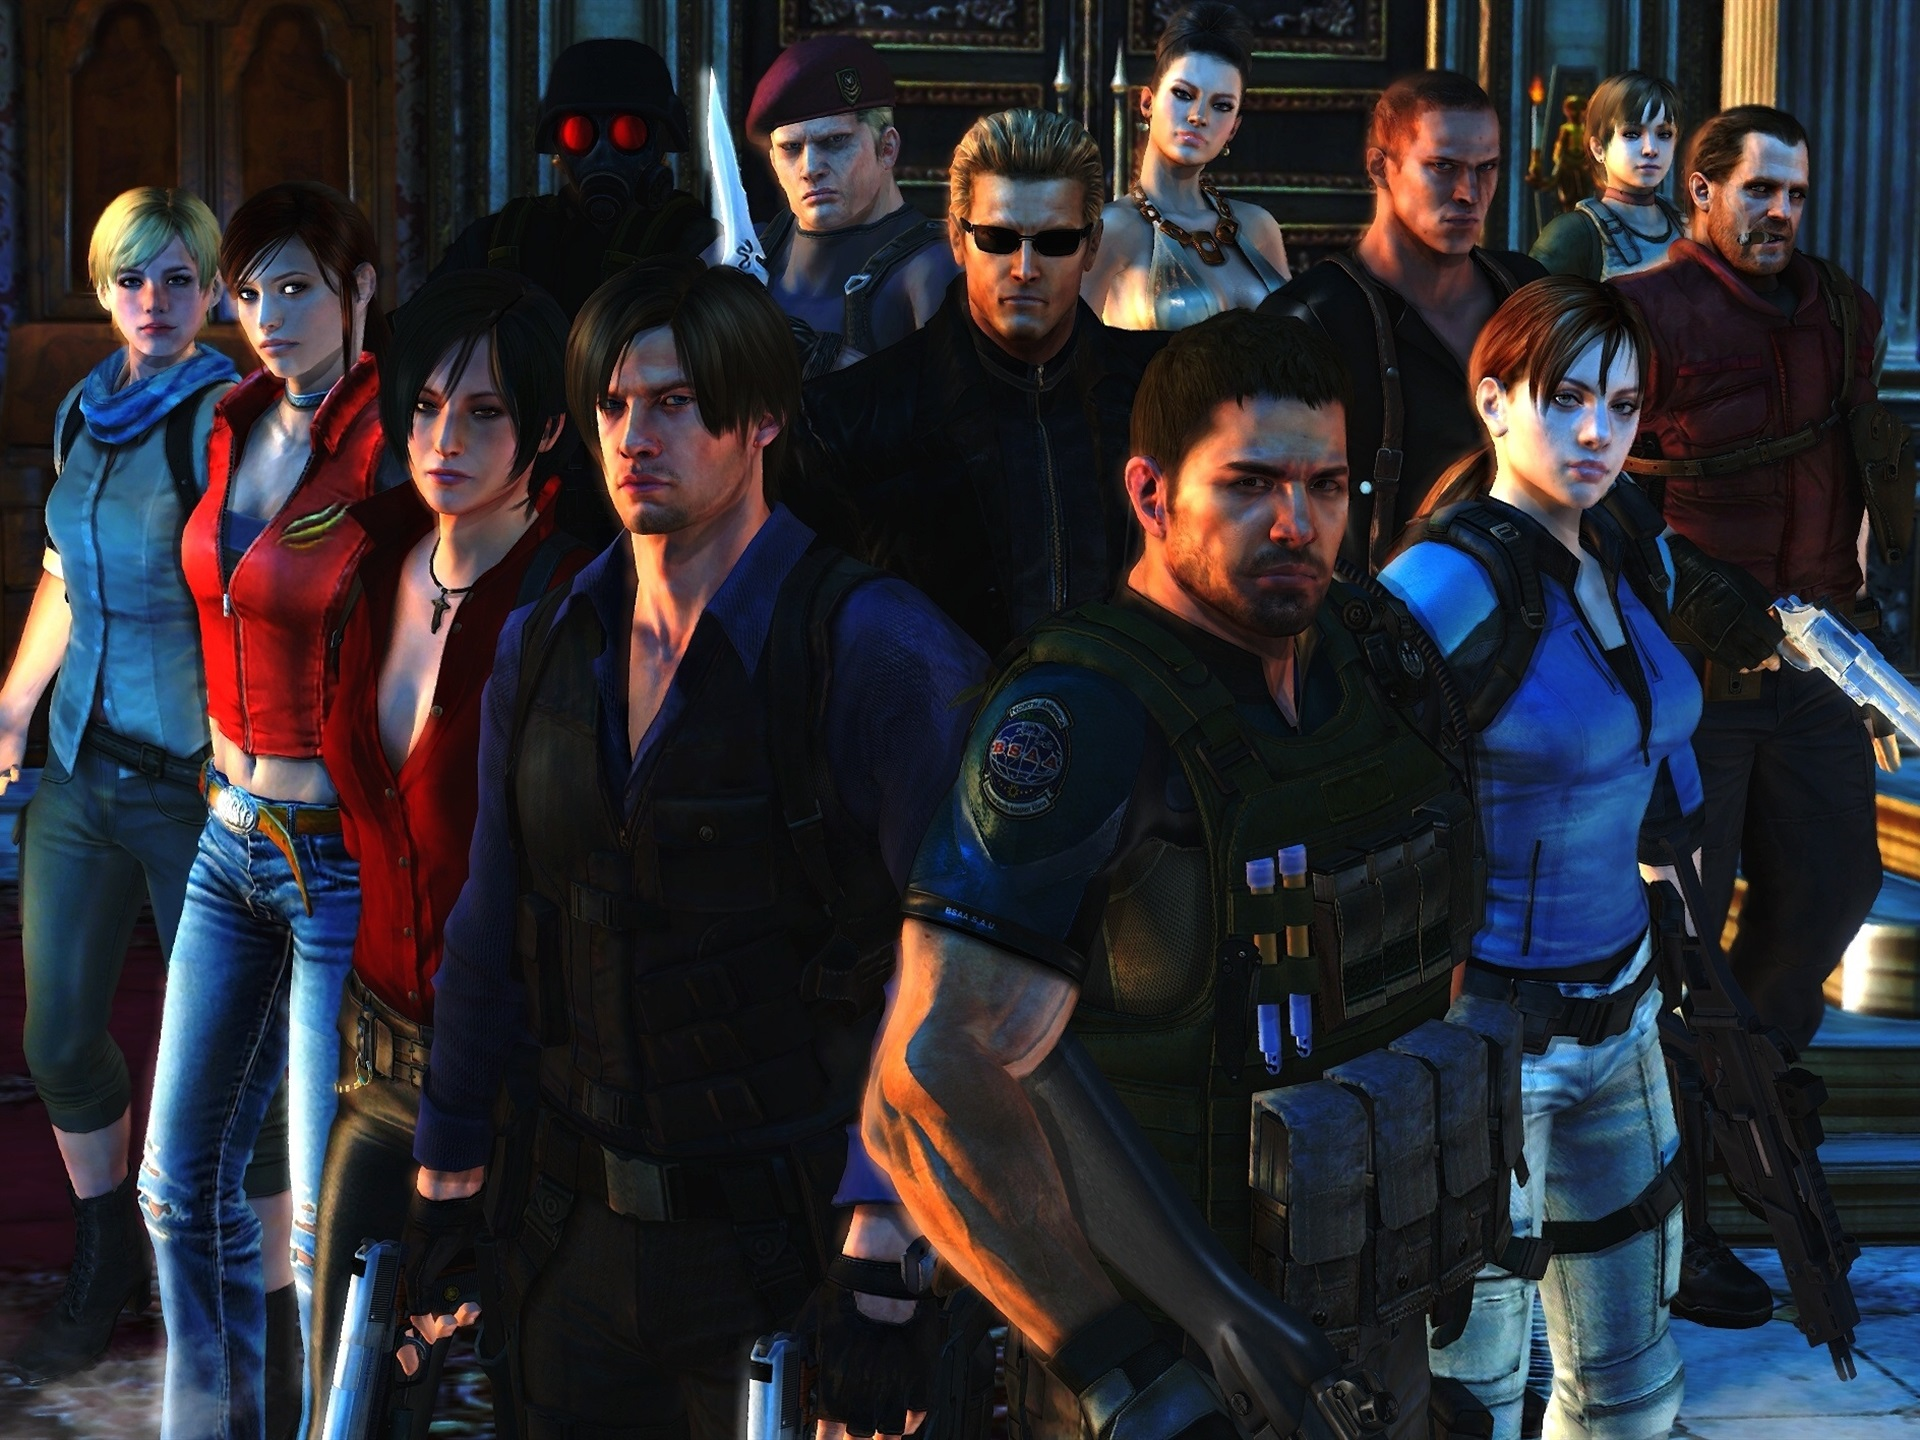 Wallpaper Resident Evil 6 Game Characters 1920x1440 Hd Picture Image